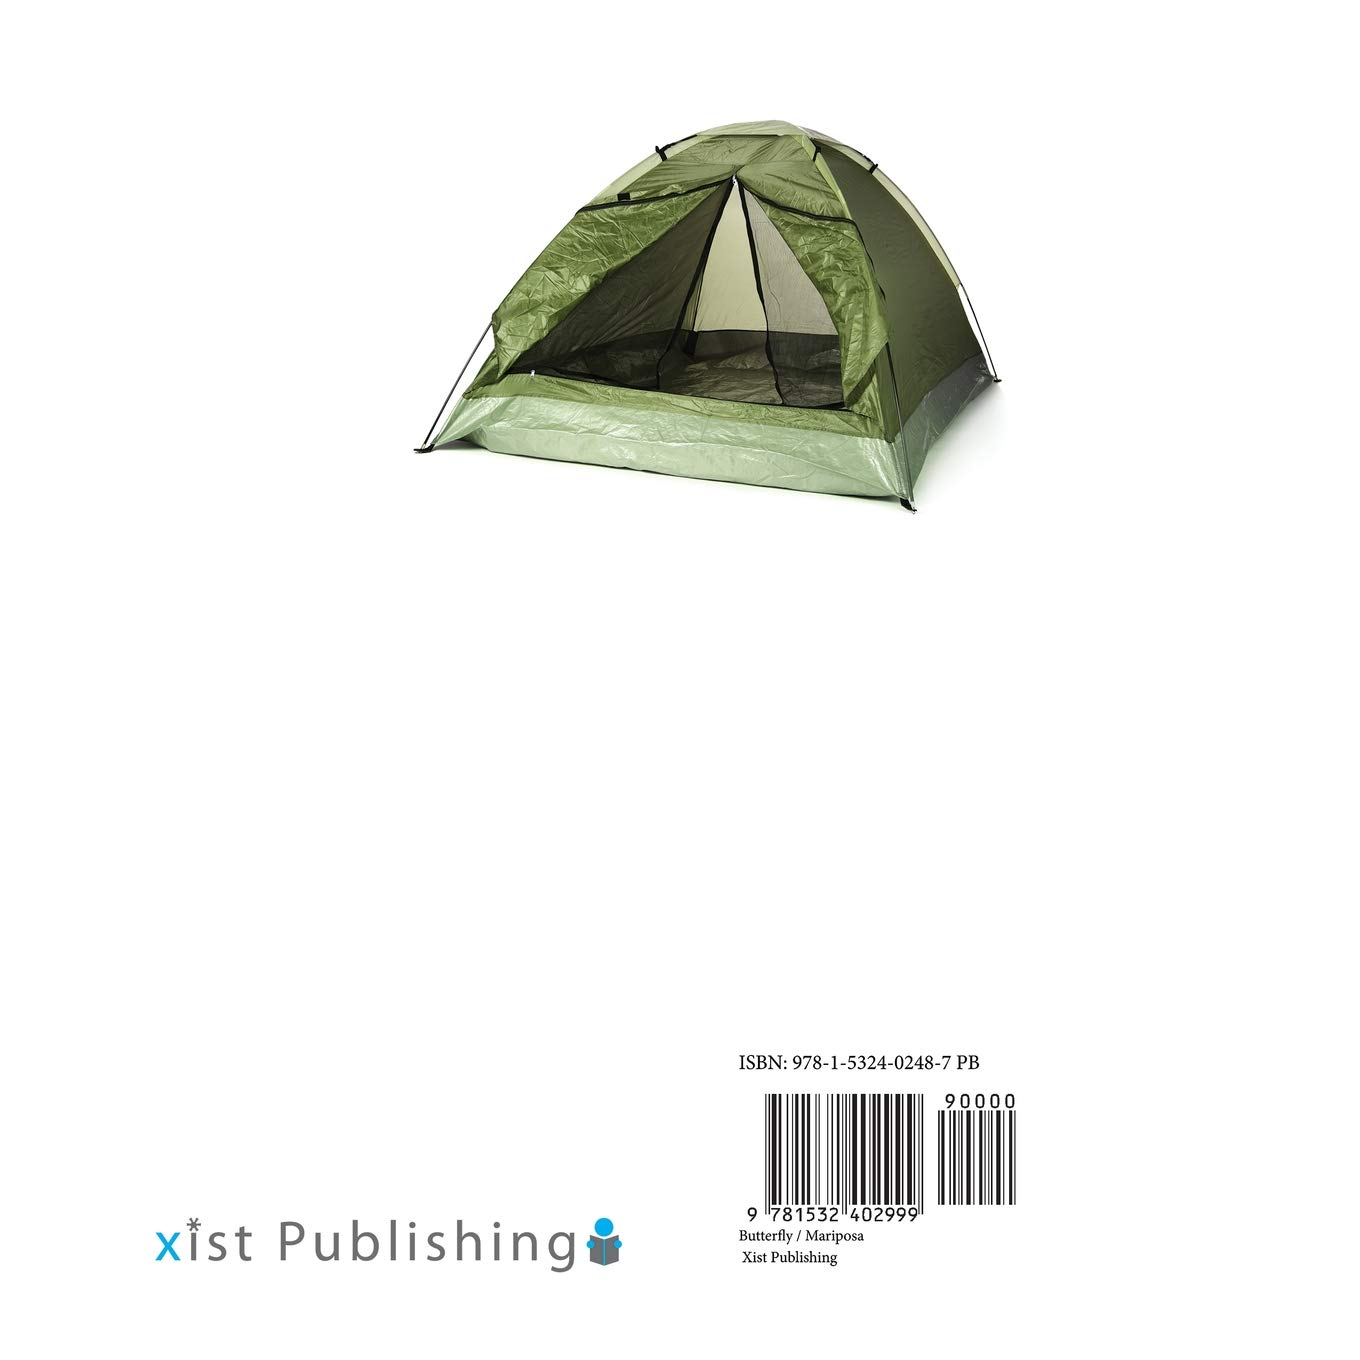 Camping / Cámping (Xist Kids Bilingual Spanish English): Xist Publishing: 9781532402999: Amazon.com: Books